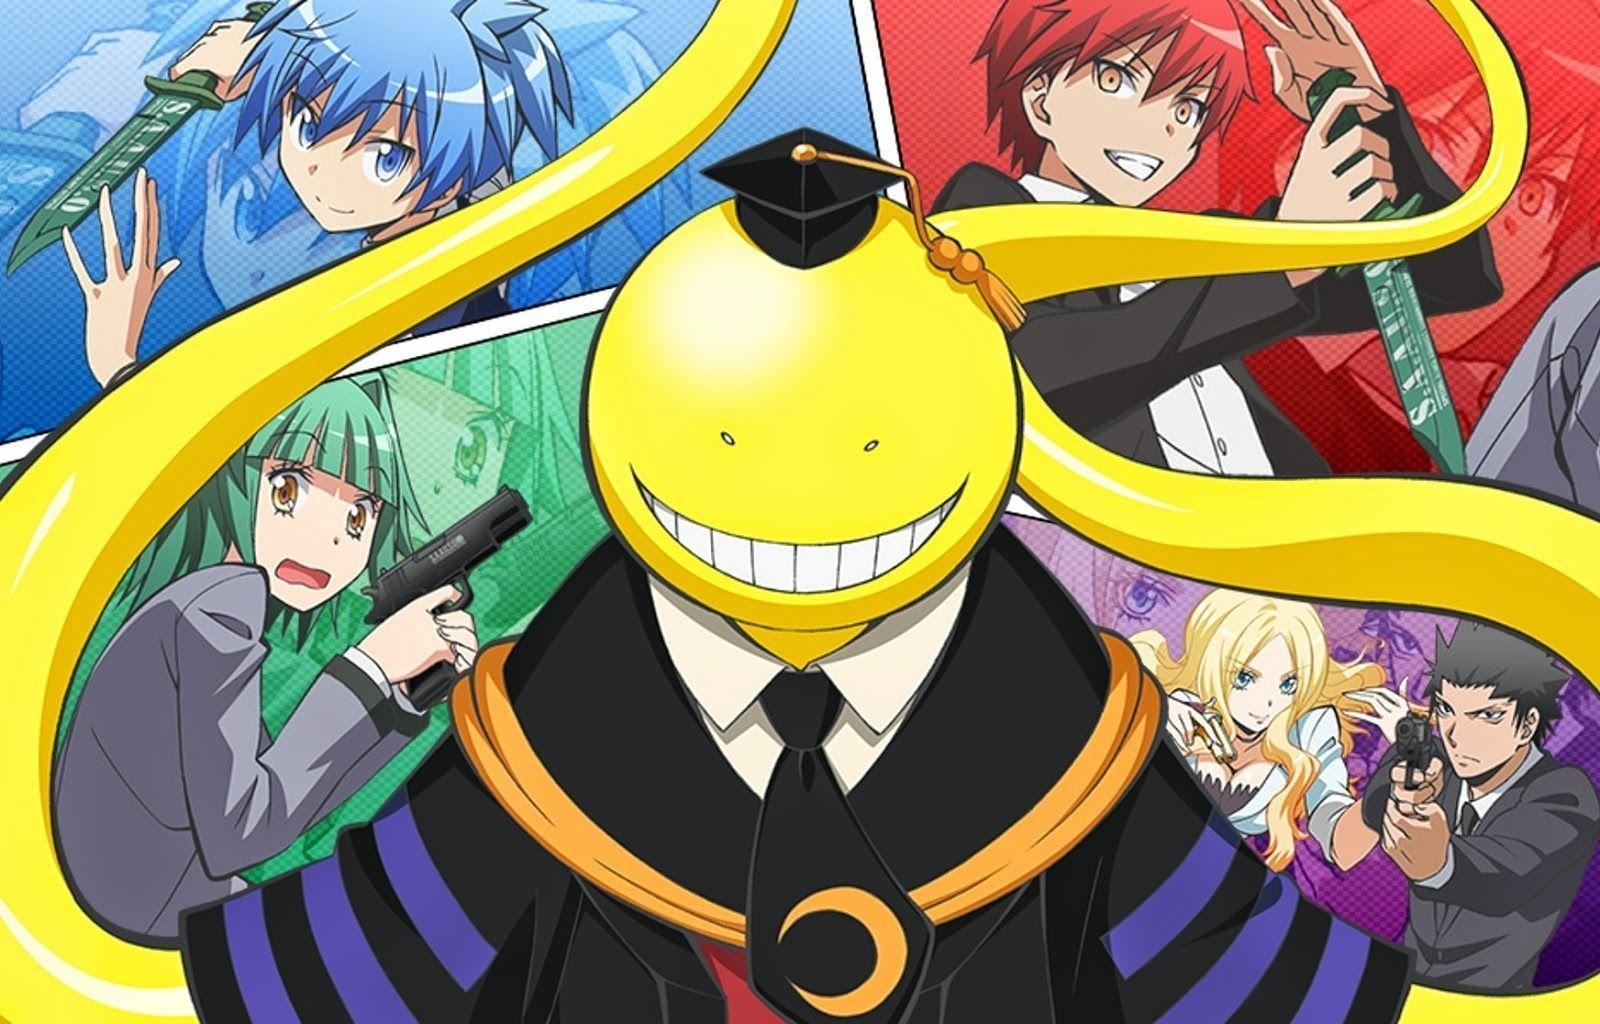 assassination classroom wallpapers - wallpaper cave